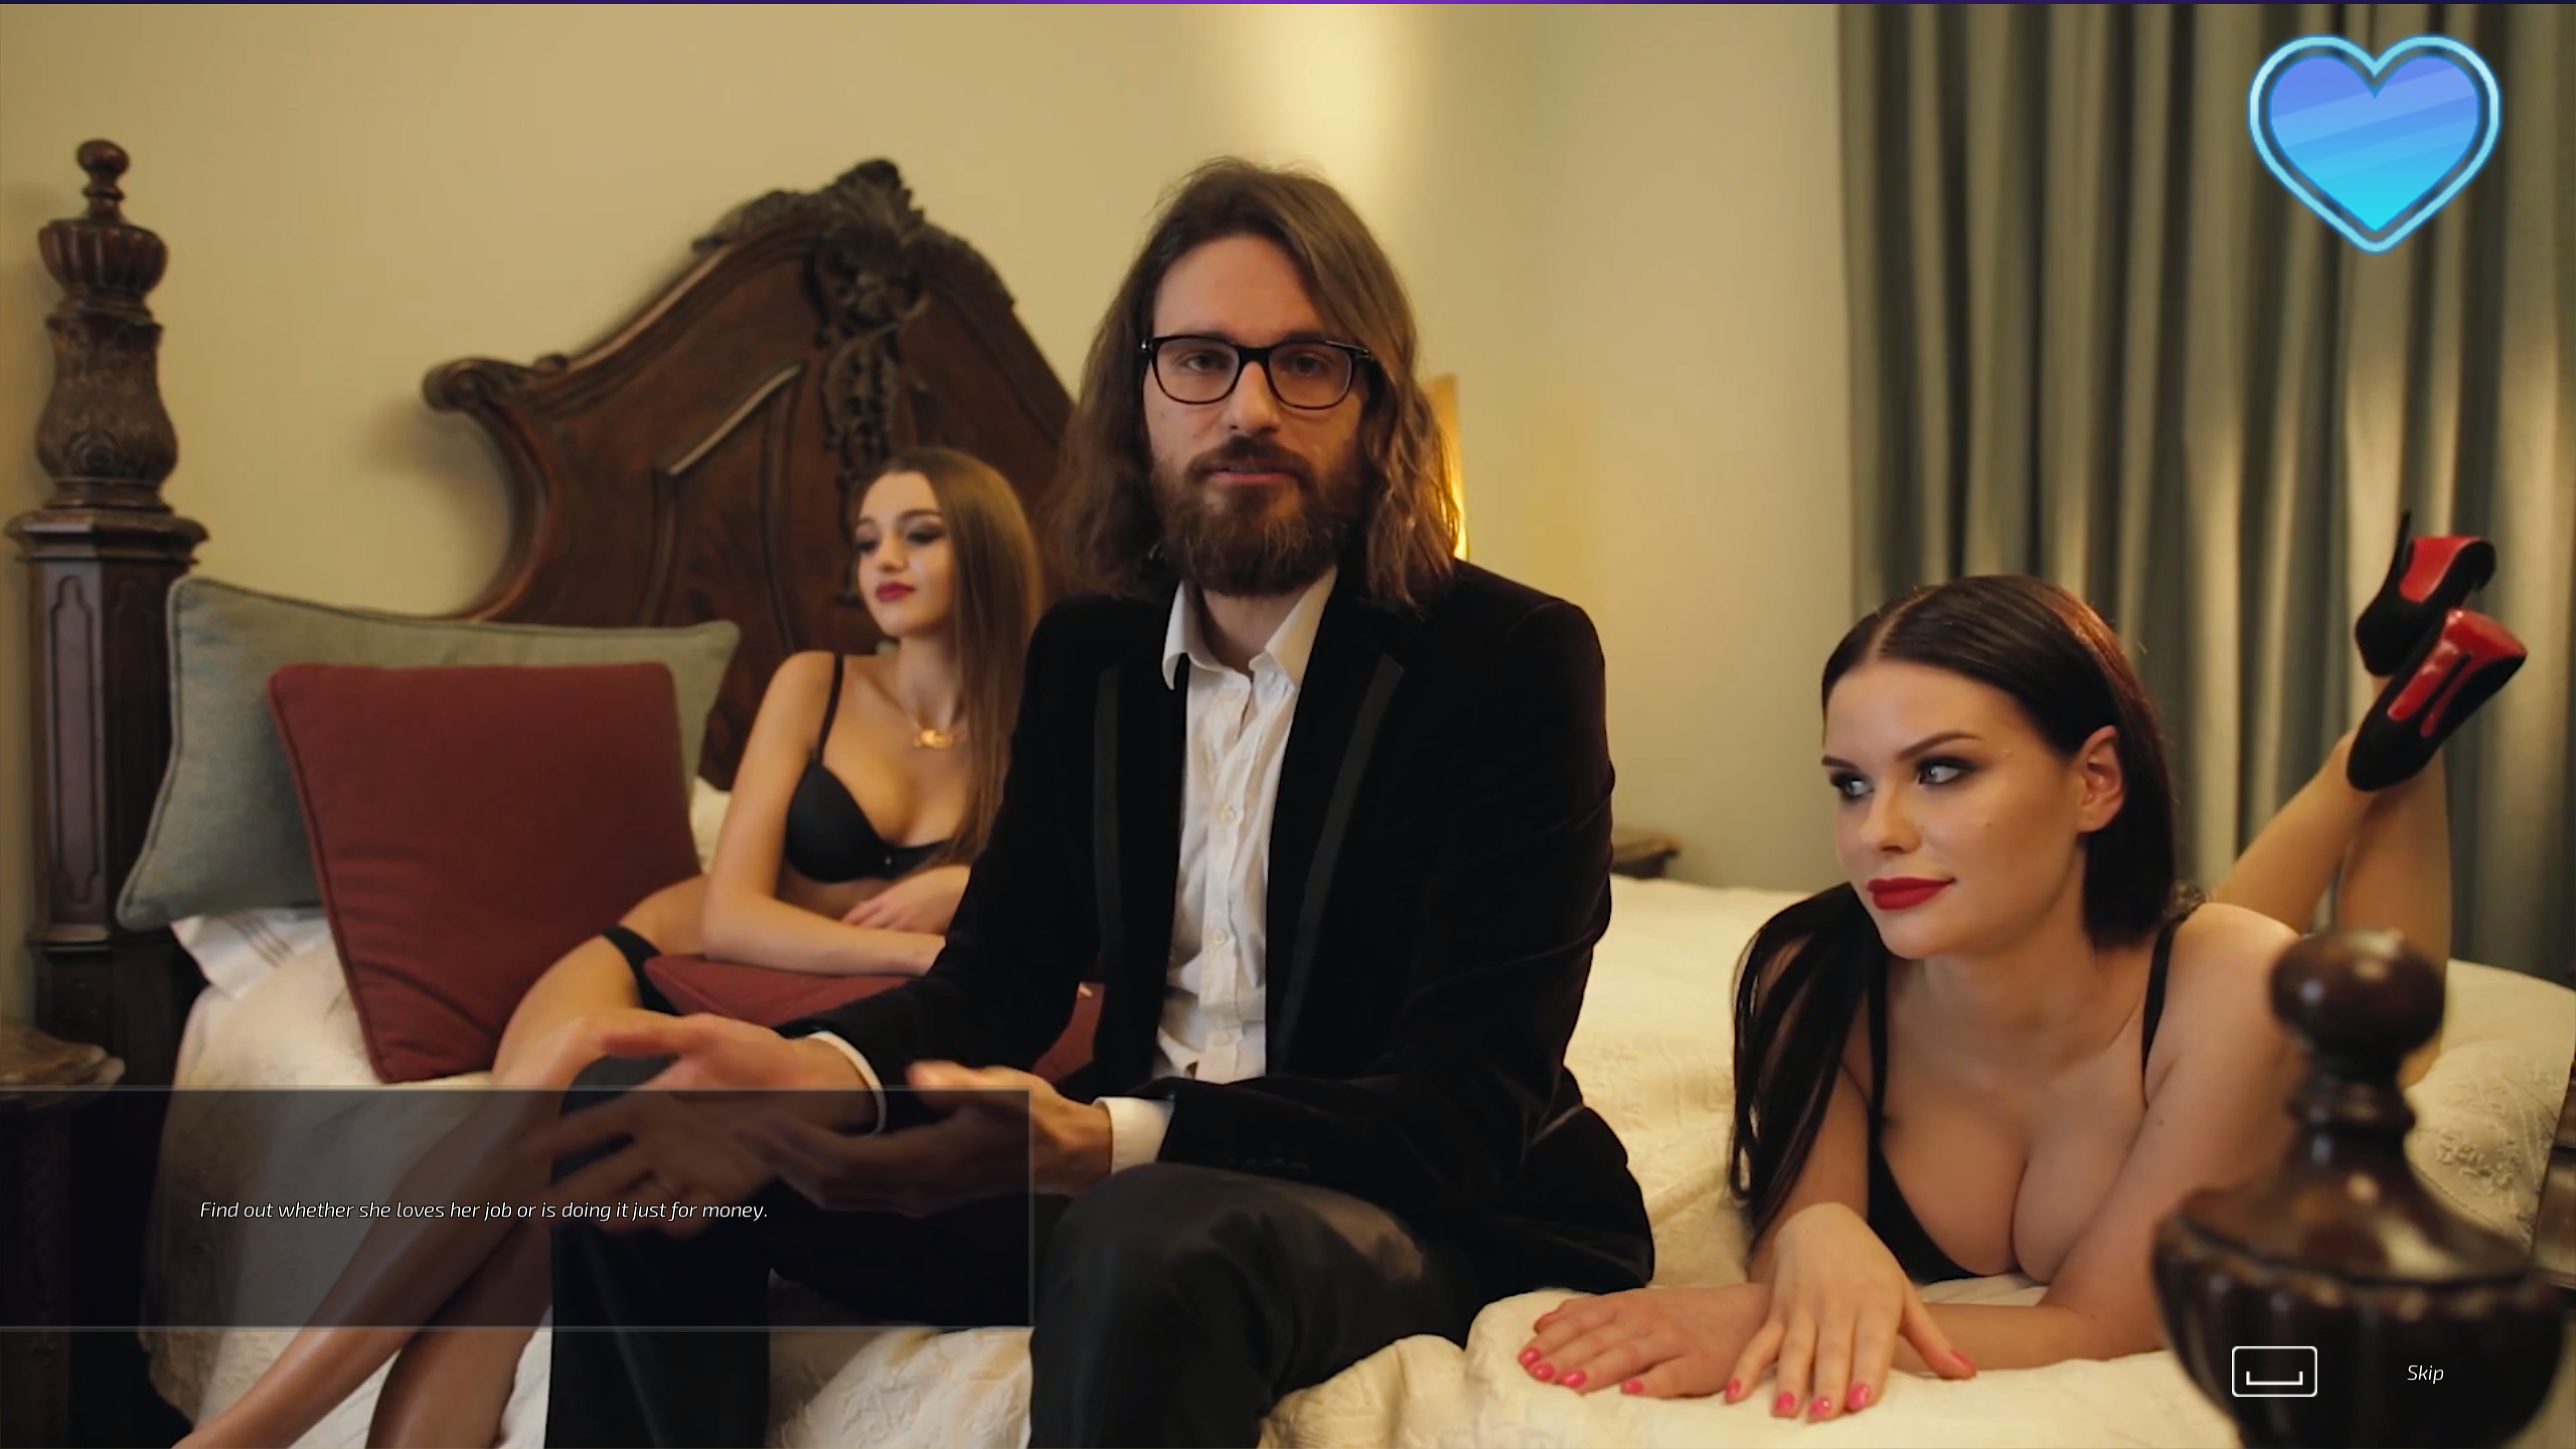 I Played Super SeducerSo You Don't Have To